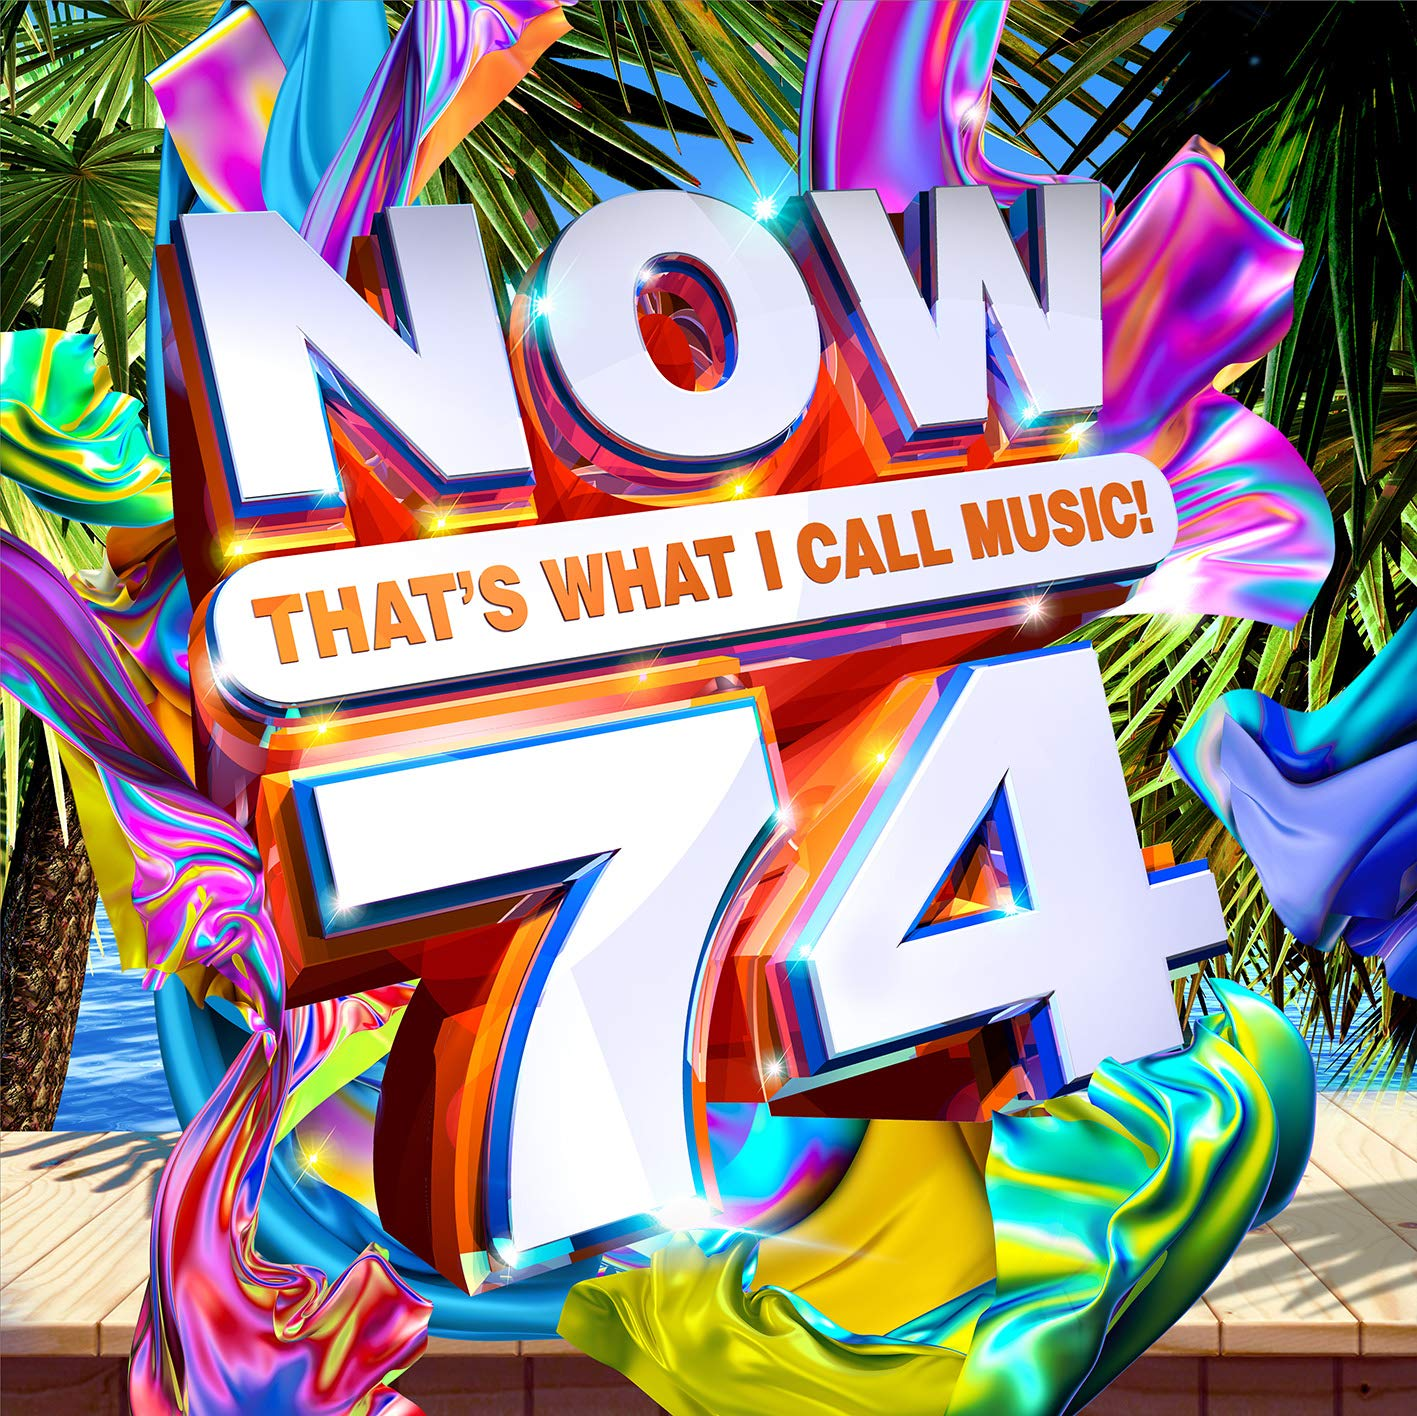 VA - Now That's What I Call Music! 74 (2020) [FLAC] Download